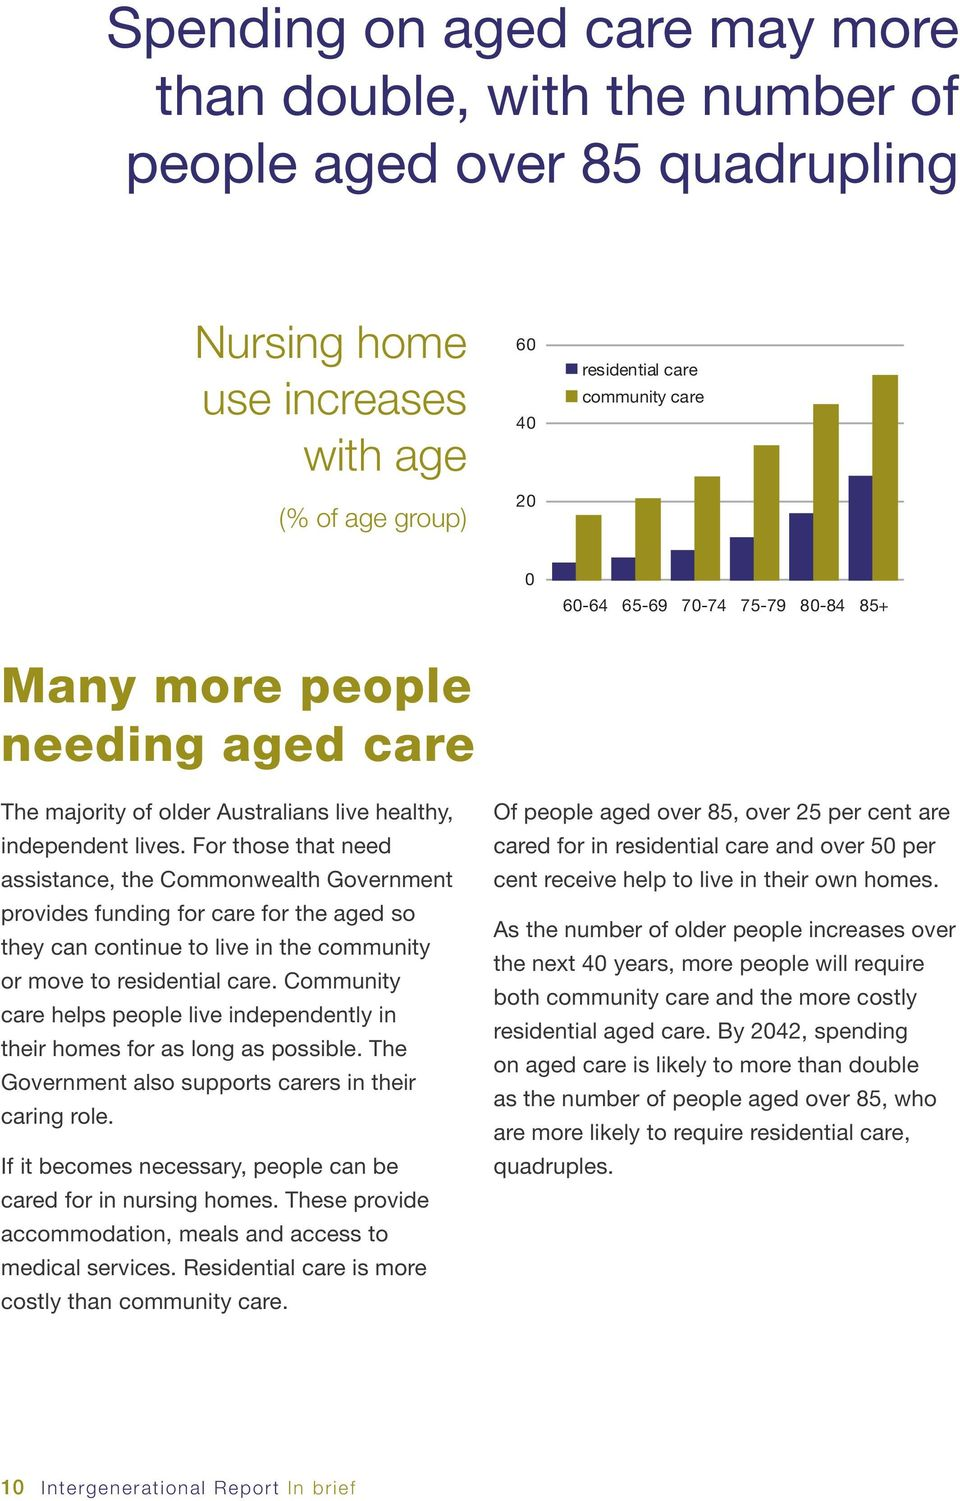 For those that need assistance, the Commonwealth Government provides funding for care for the aged so they can continue to live in the community or move to residential care.